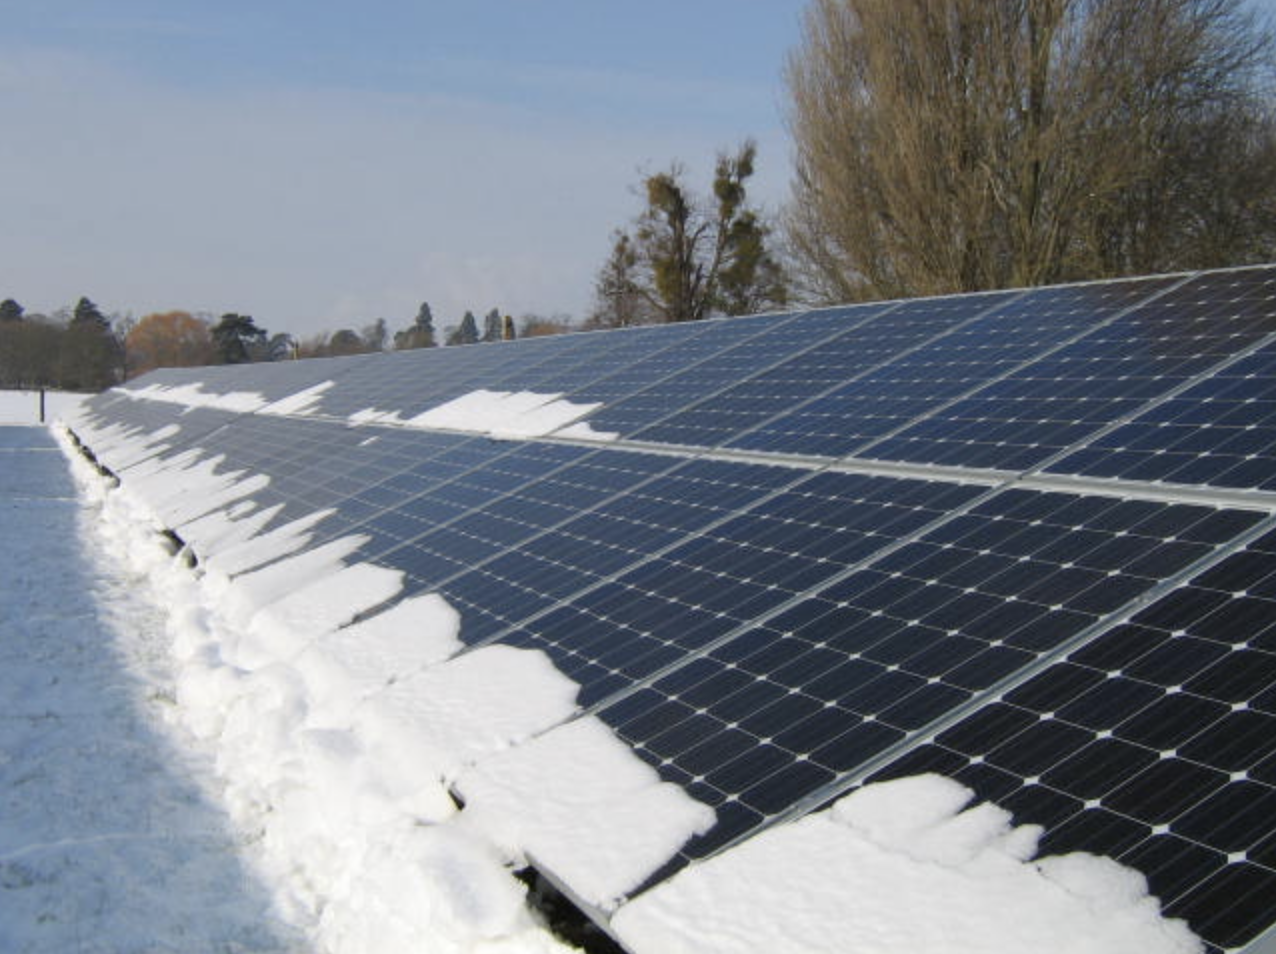 Inclement Weather Is No Match for Some Solar Technology